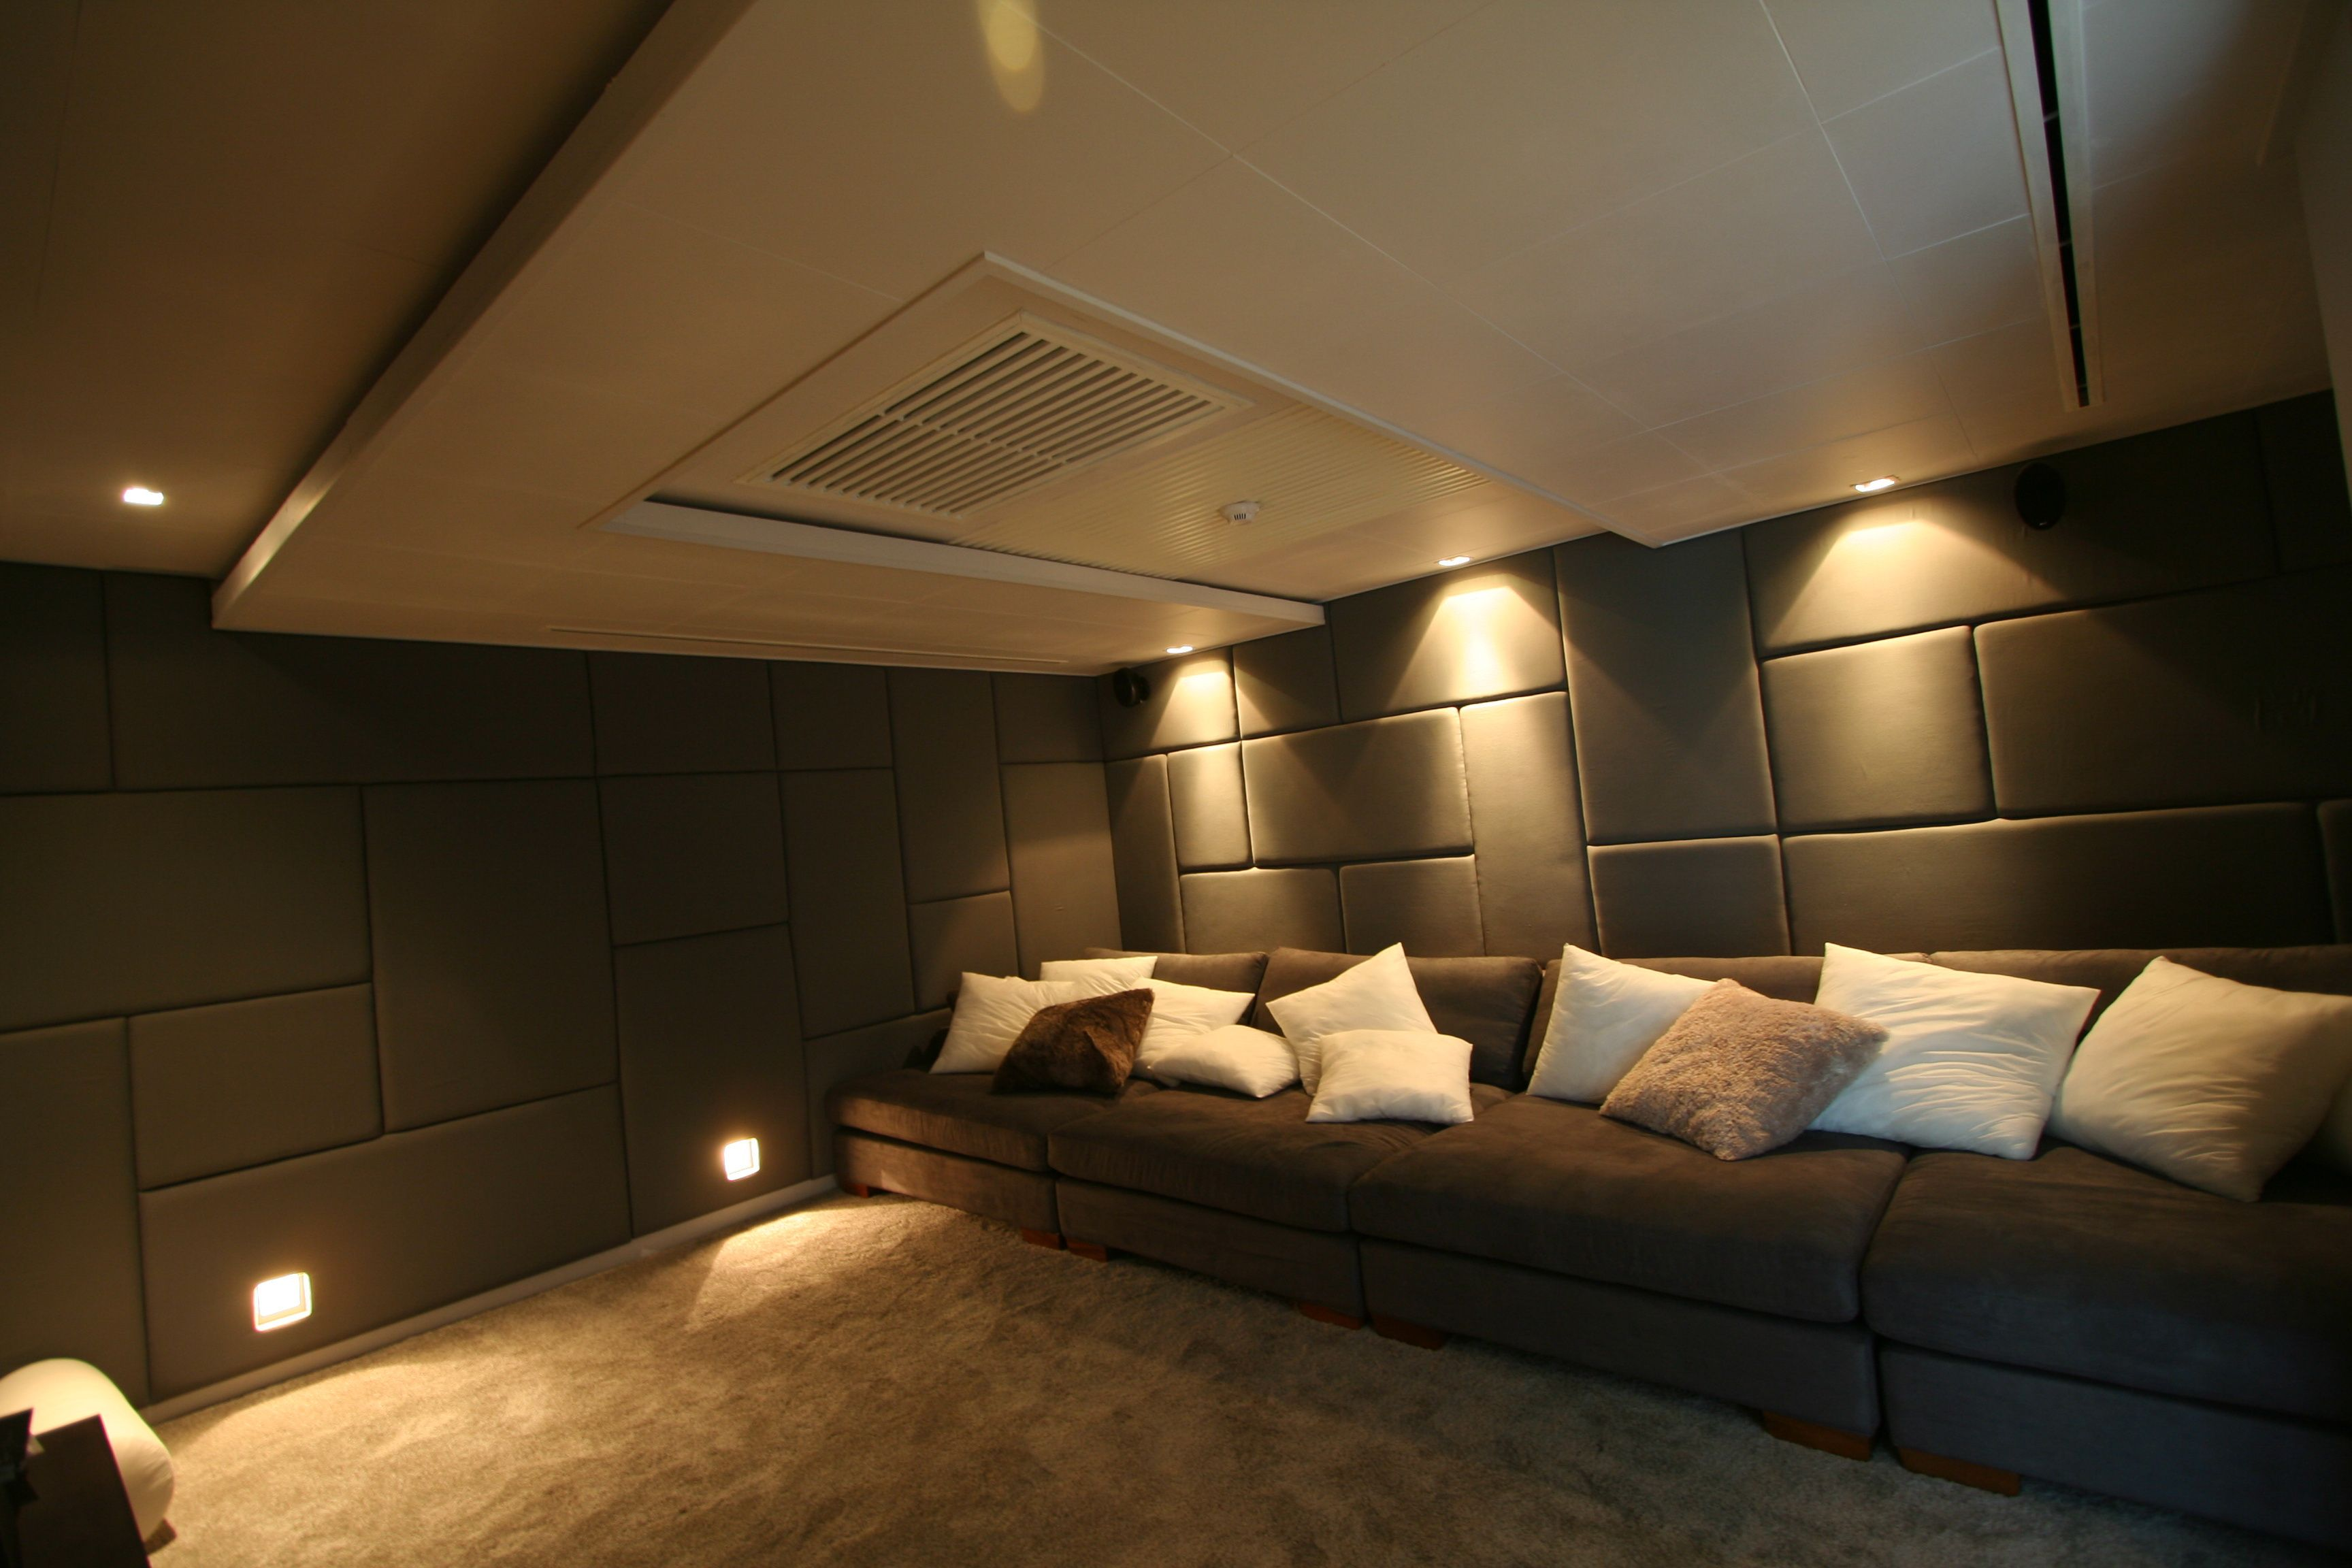 Cinema Room S Wall Home Cinema Room Cinema Room Home